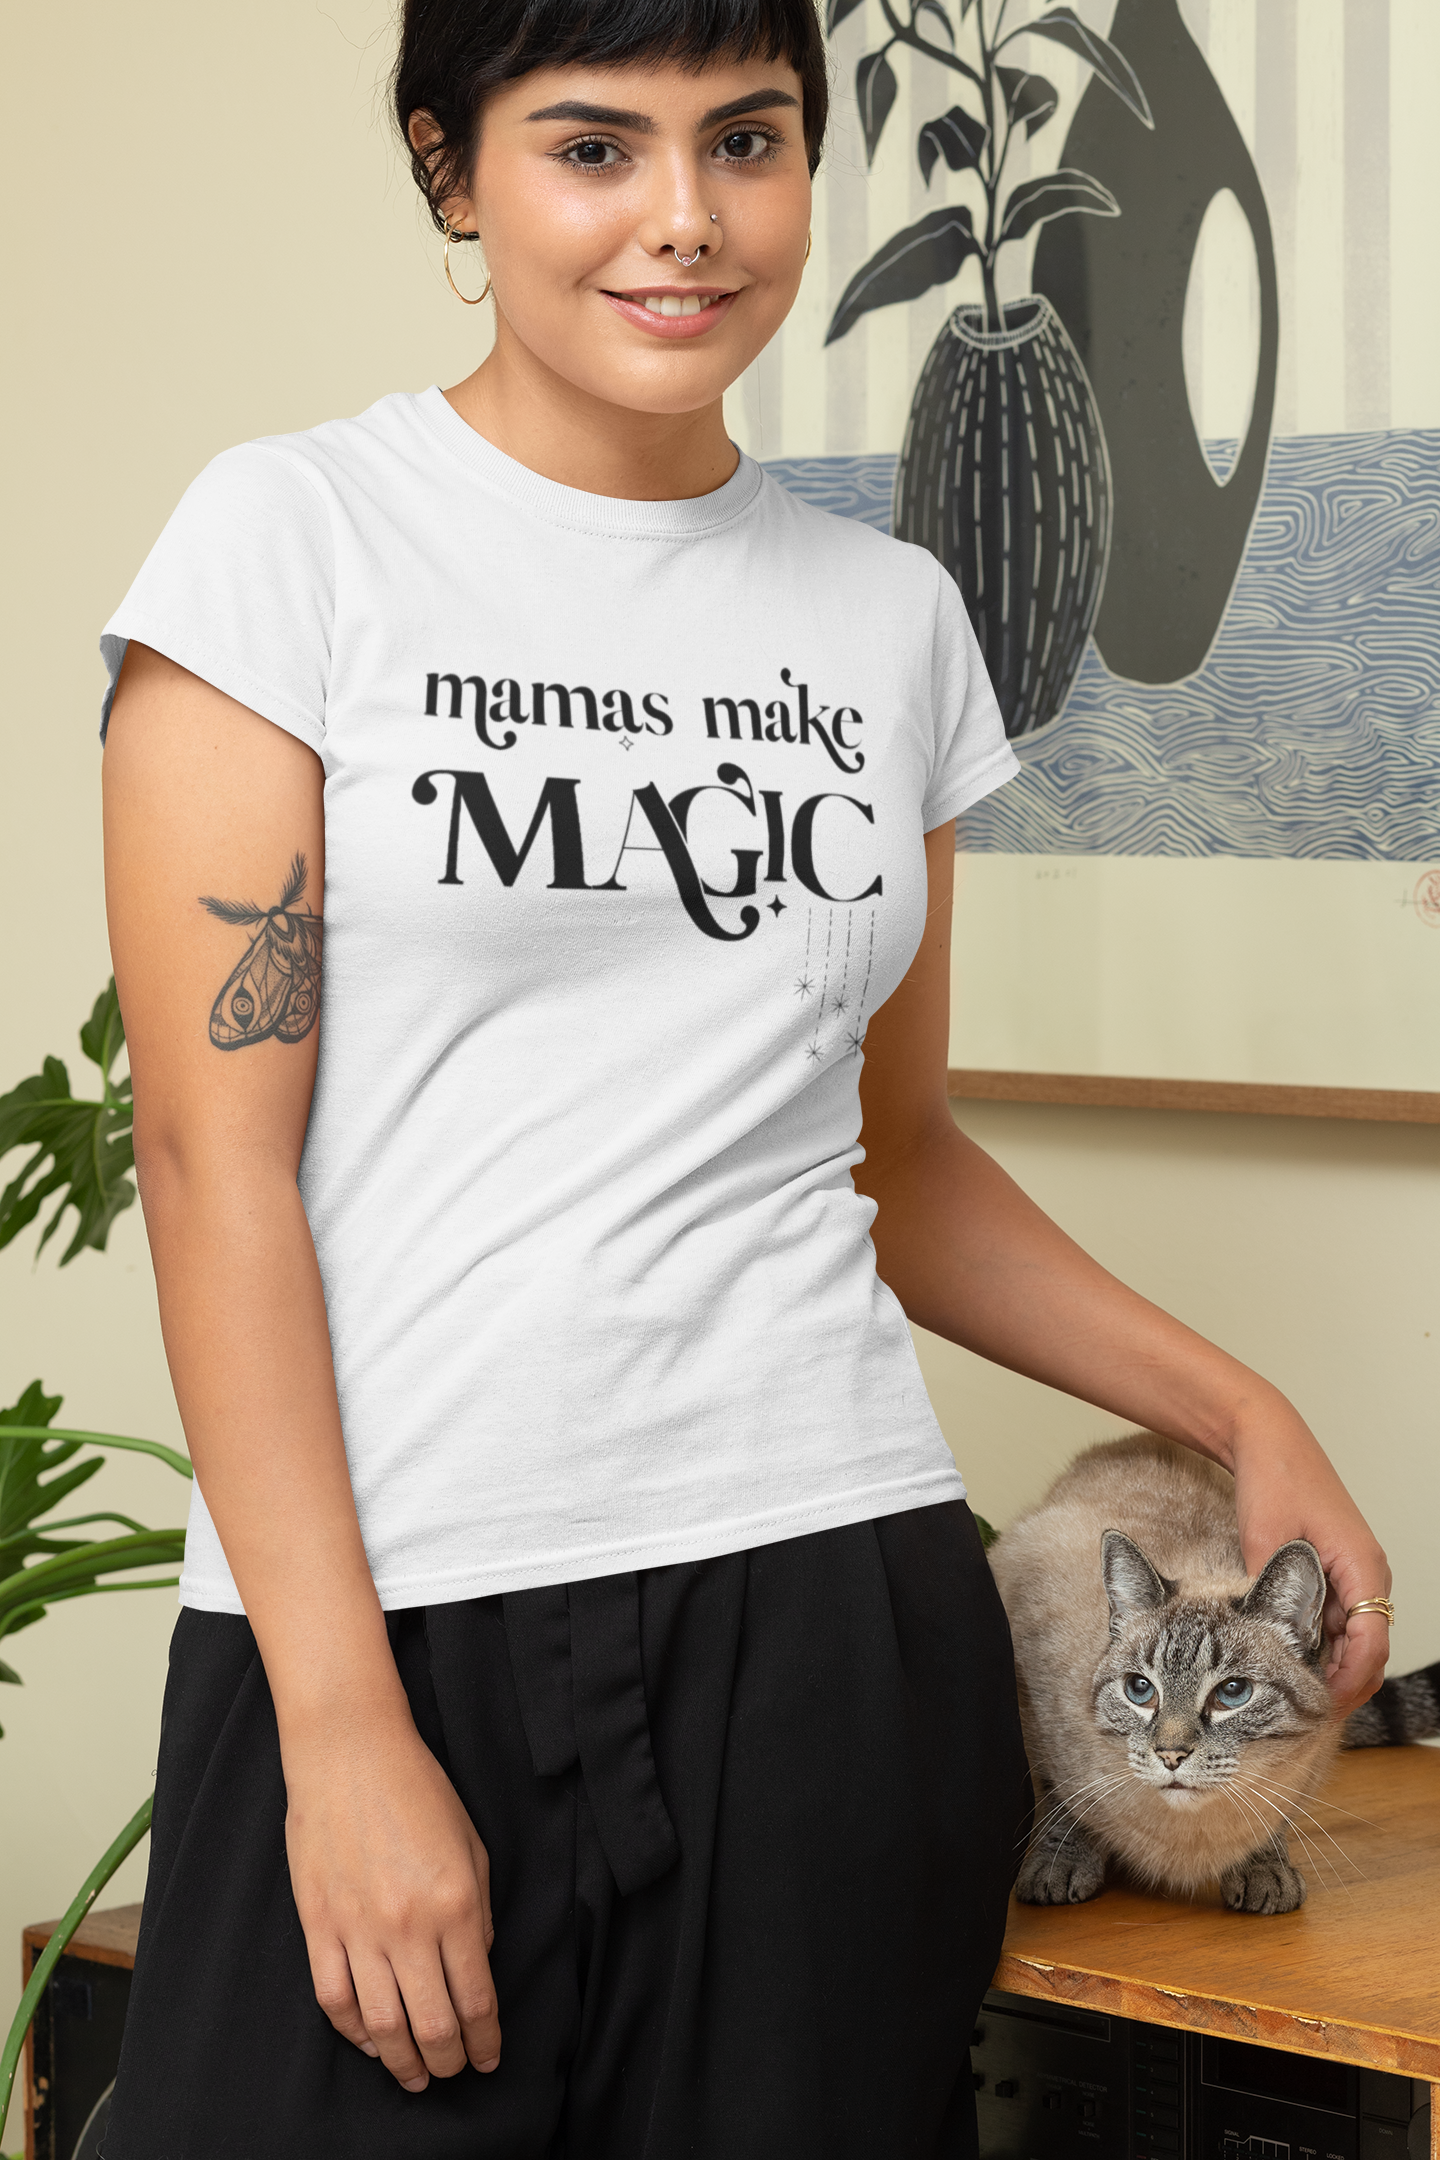 Smiling woman wearing a white tee shirt printed with the words mamas make MAGIC in black